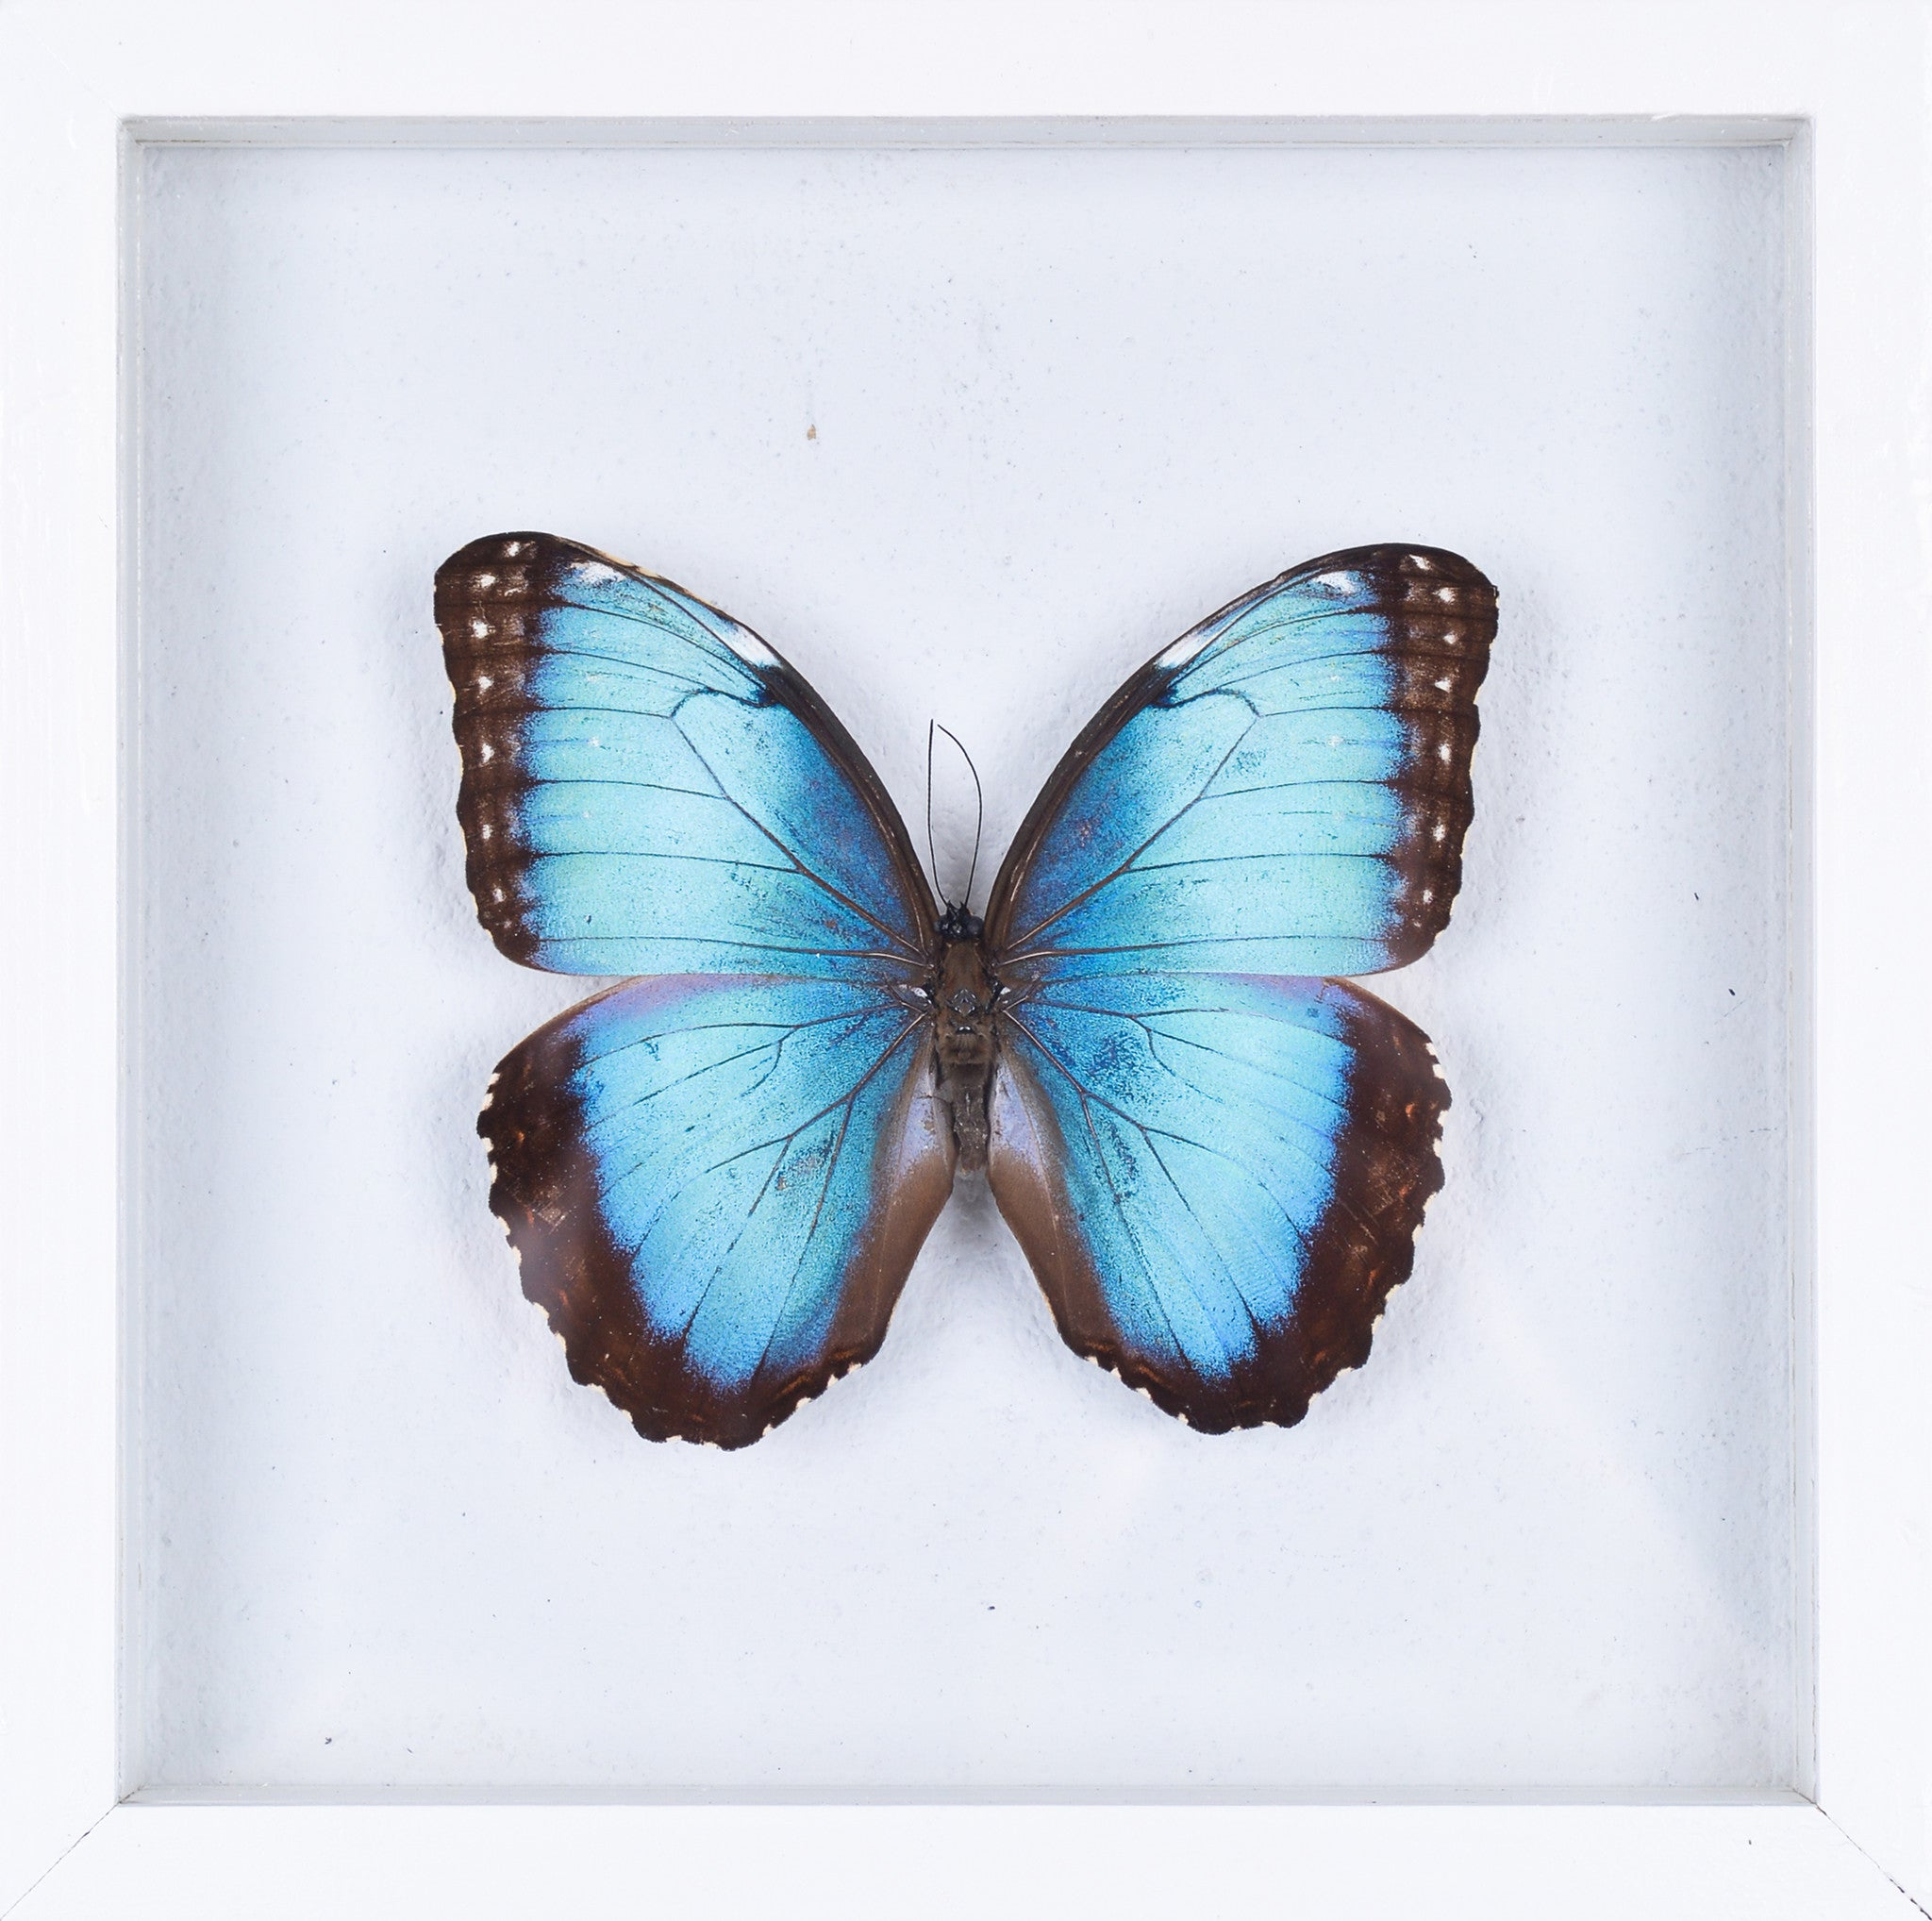 the achilles morpho butterfly framed butterfly see through glass frame natural history direct